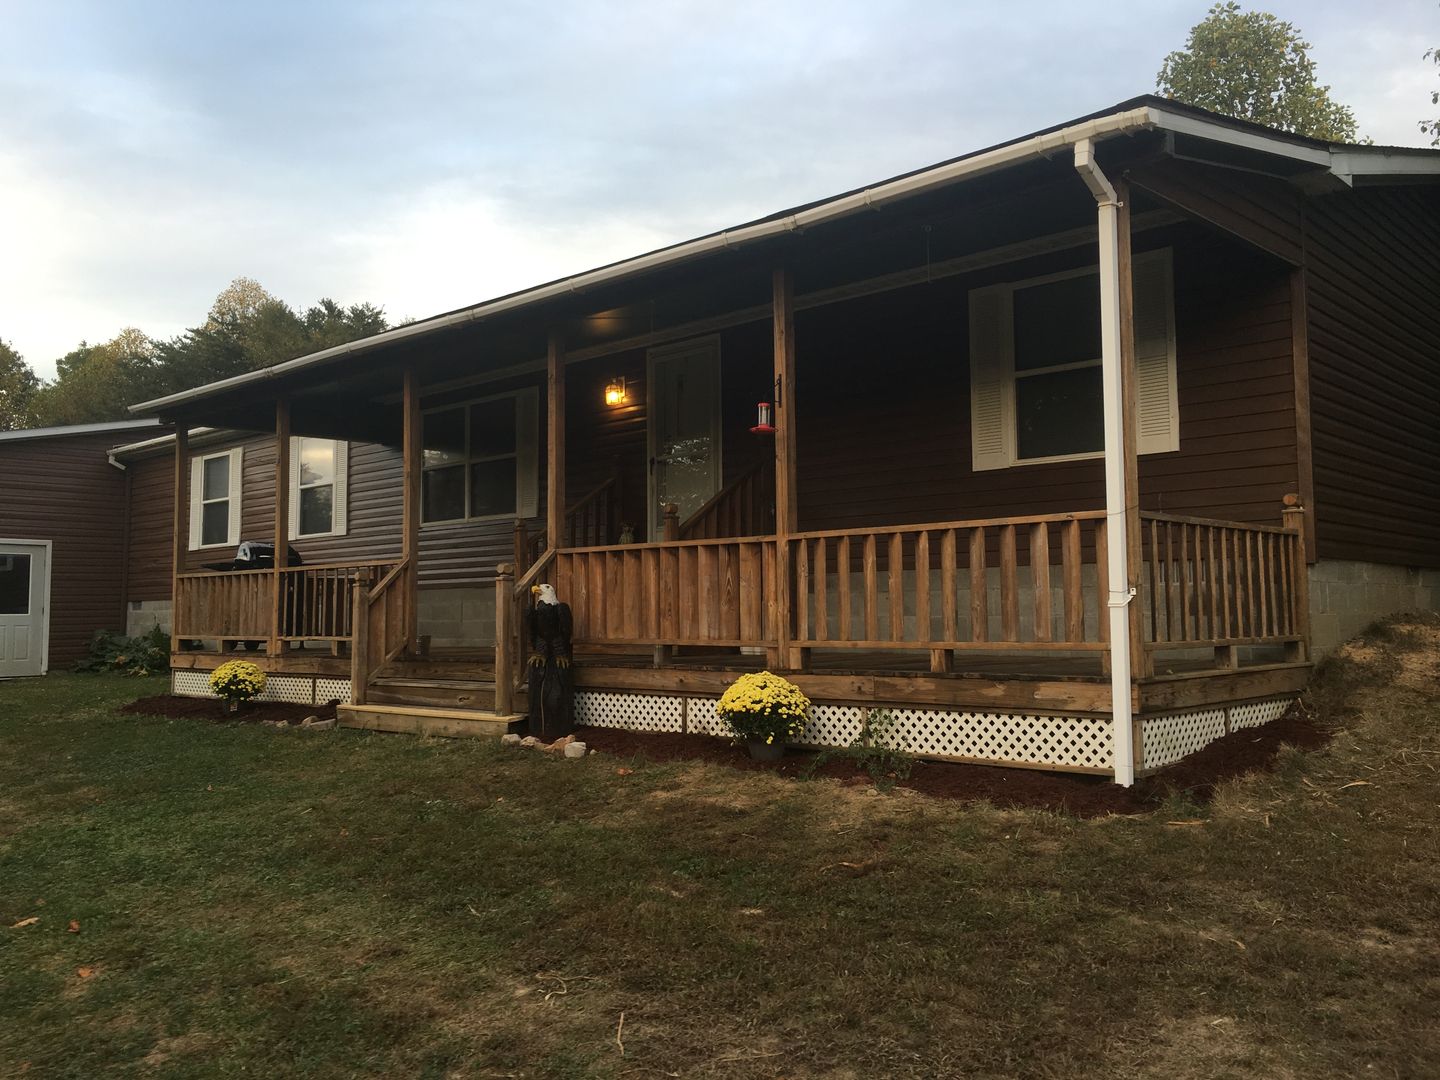 Eagles Landing - Hocking Hills Vacation Cabins and Hocking